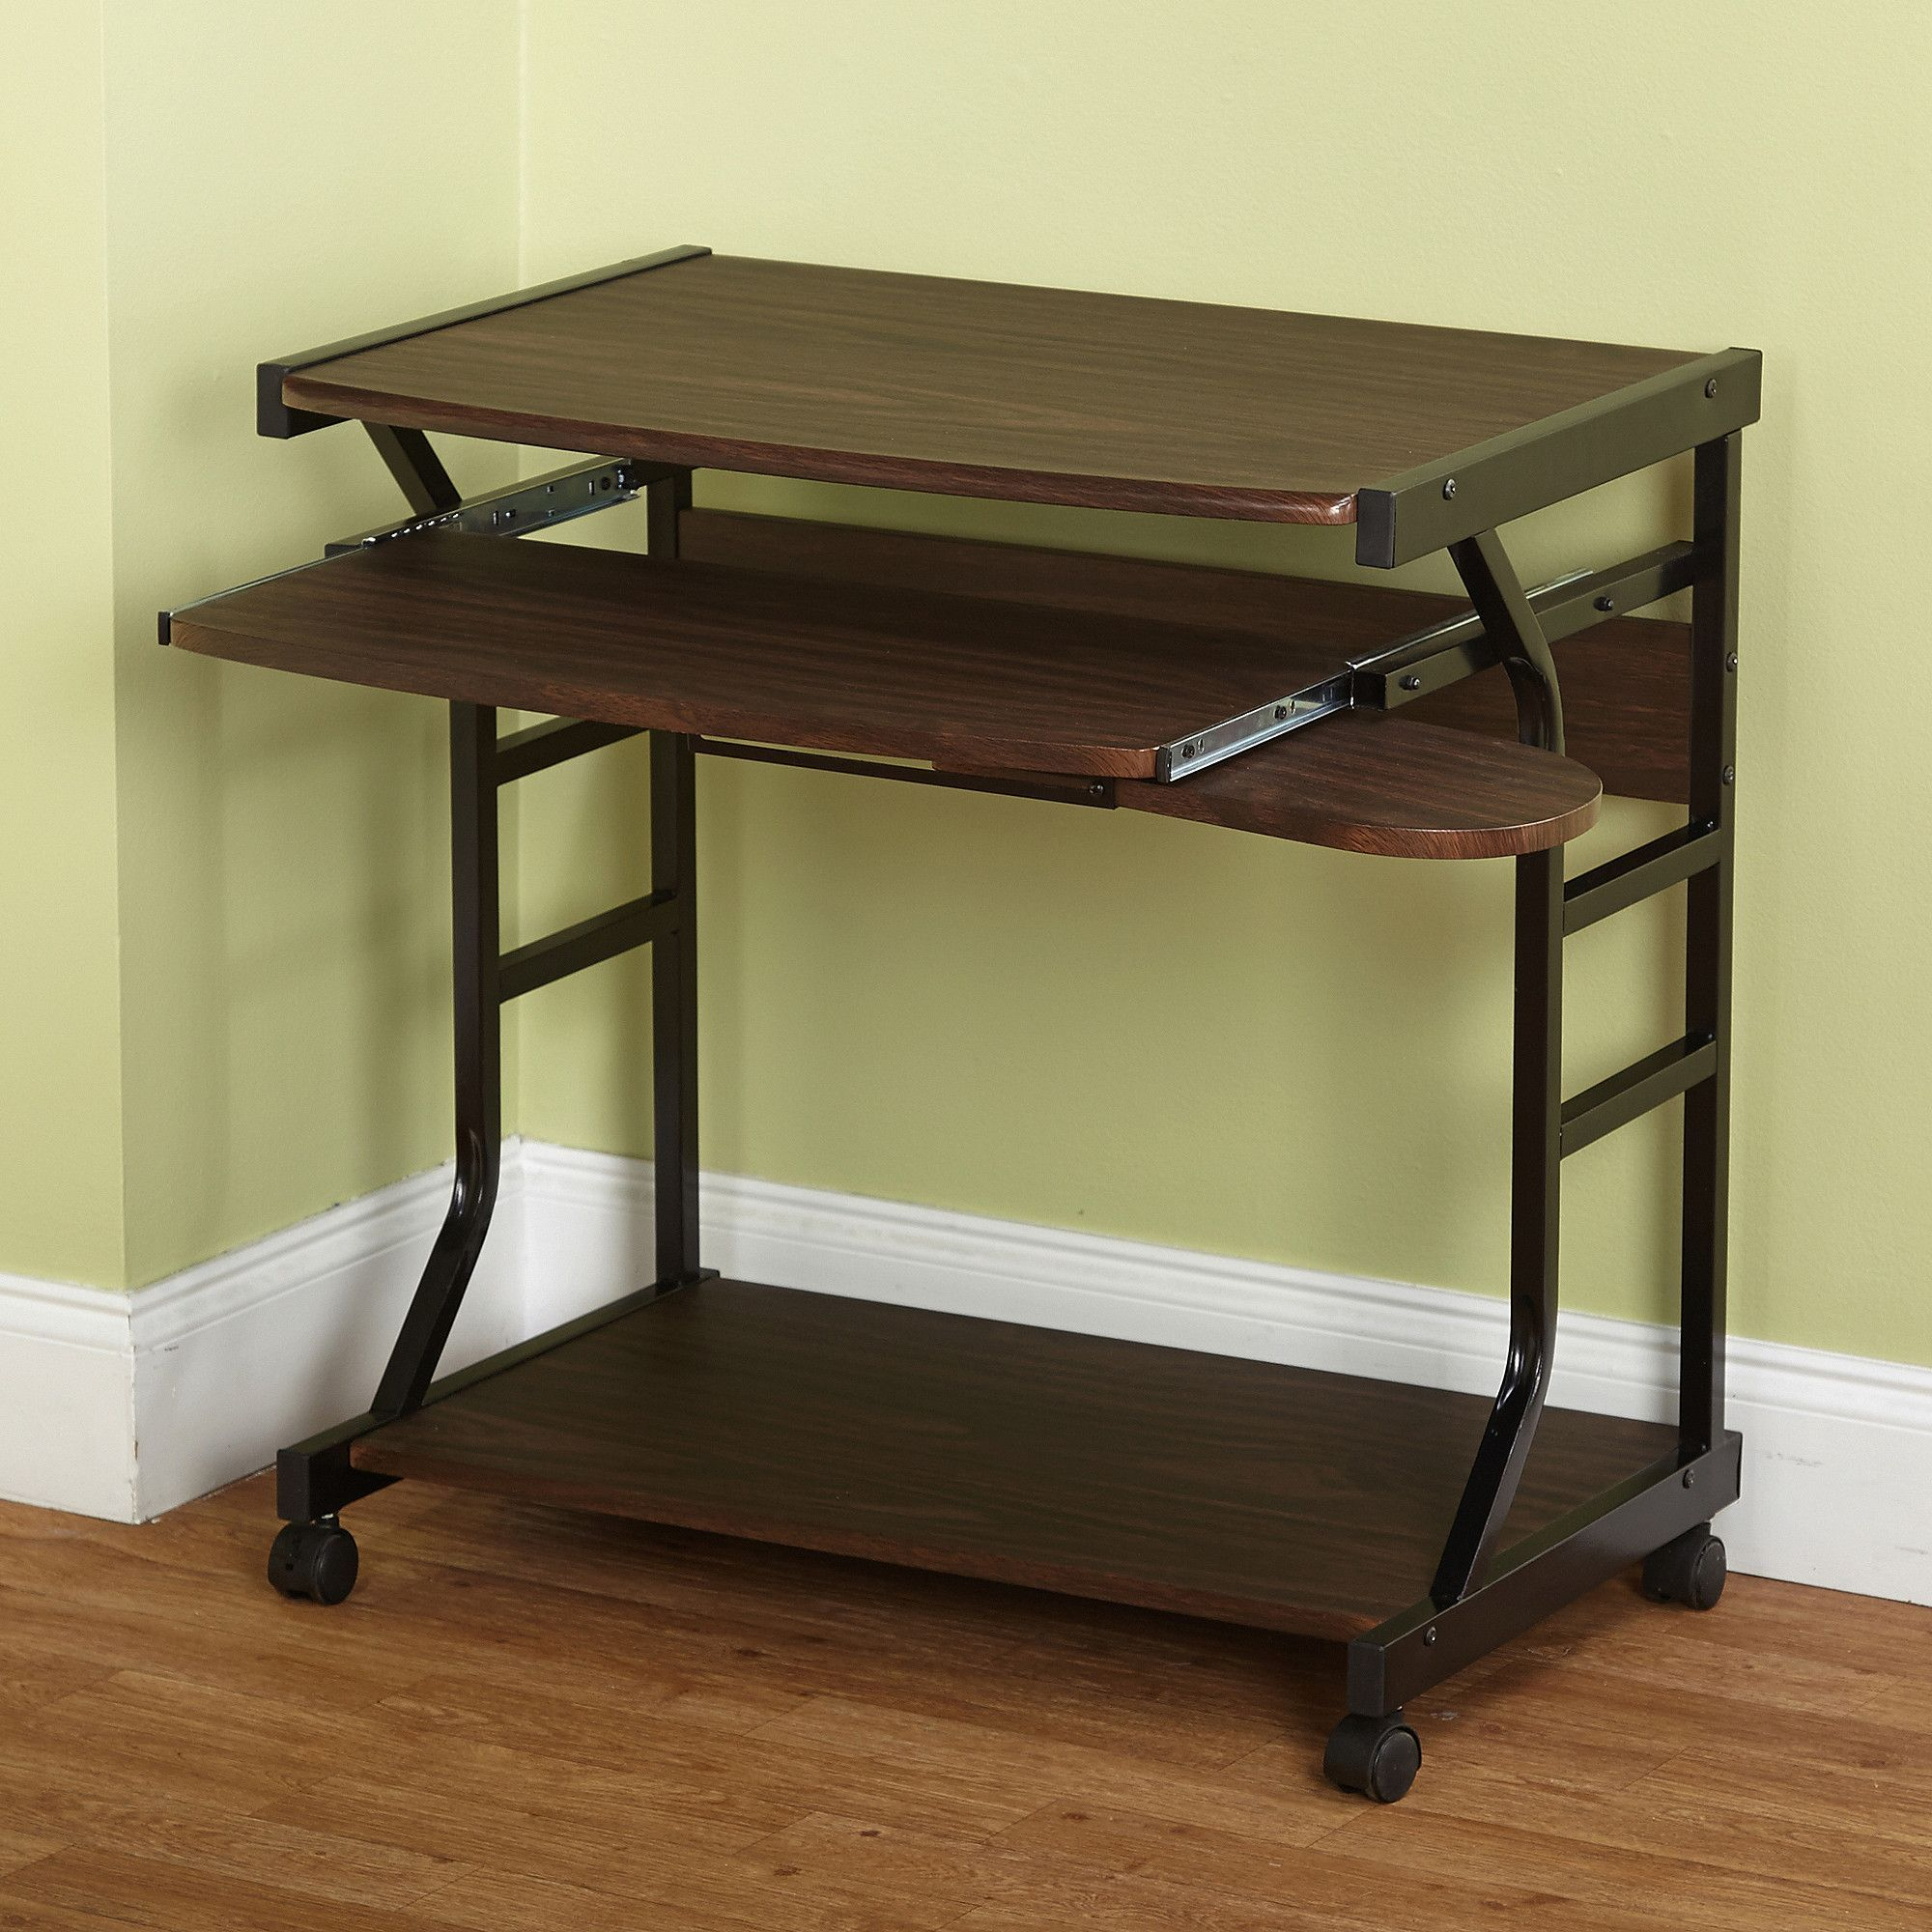 Small compact mobile portable student computer berkeley desk with wheels only 10 in stock order today product description turn any room or area into your